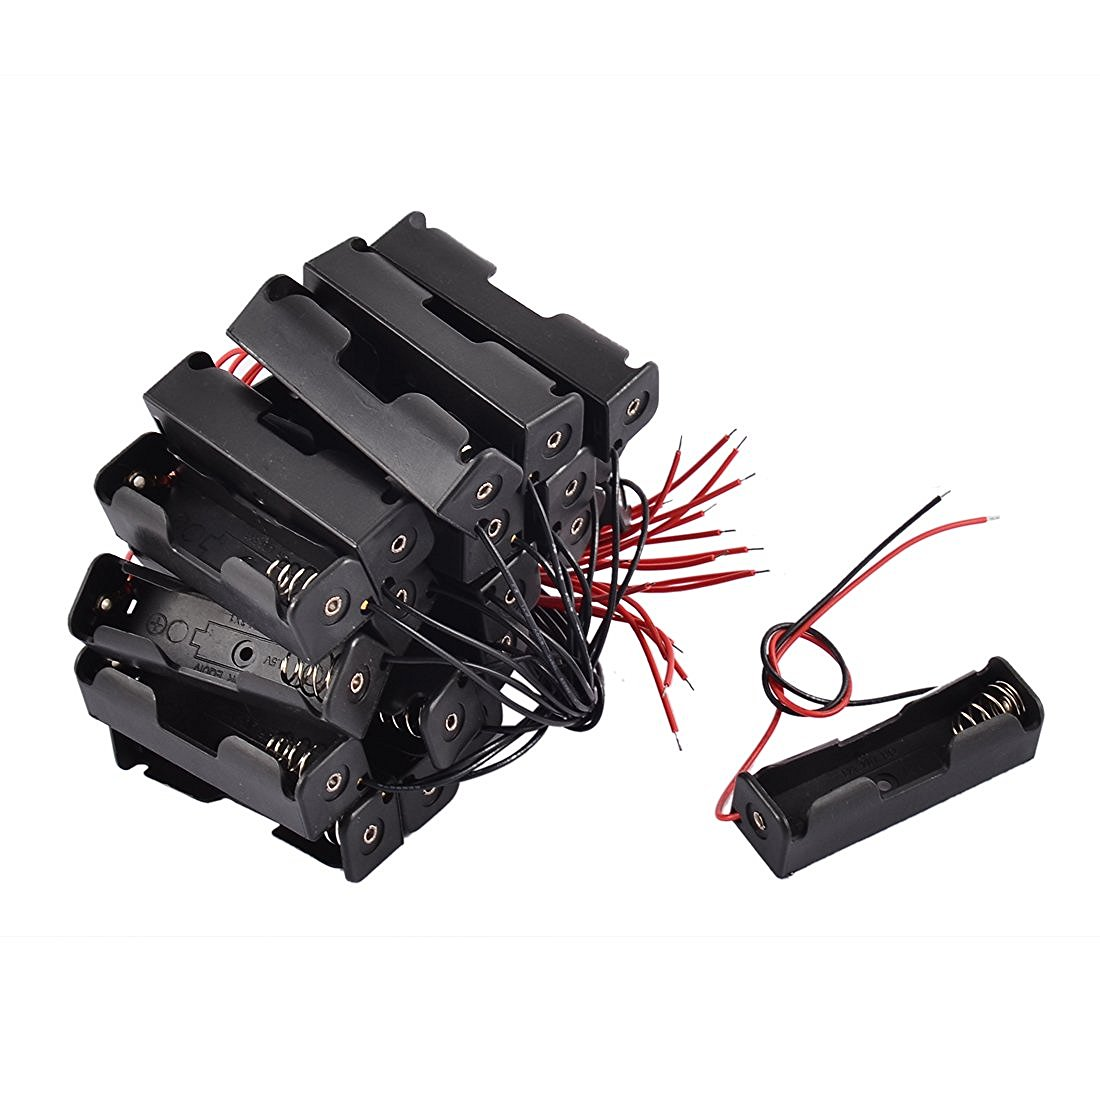 20 Pcs Black 2-Wired 1x AA Battery Case Box Holder